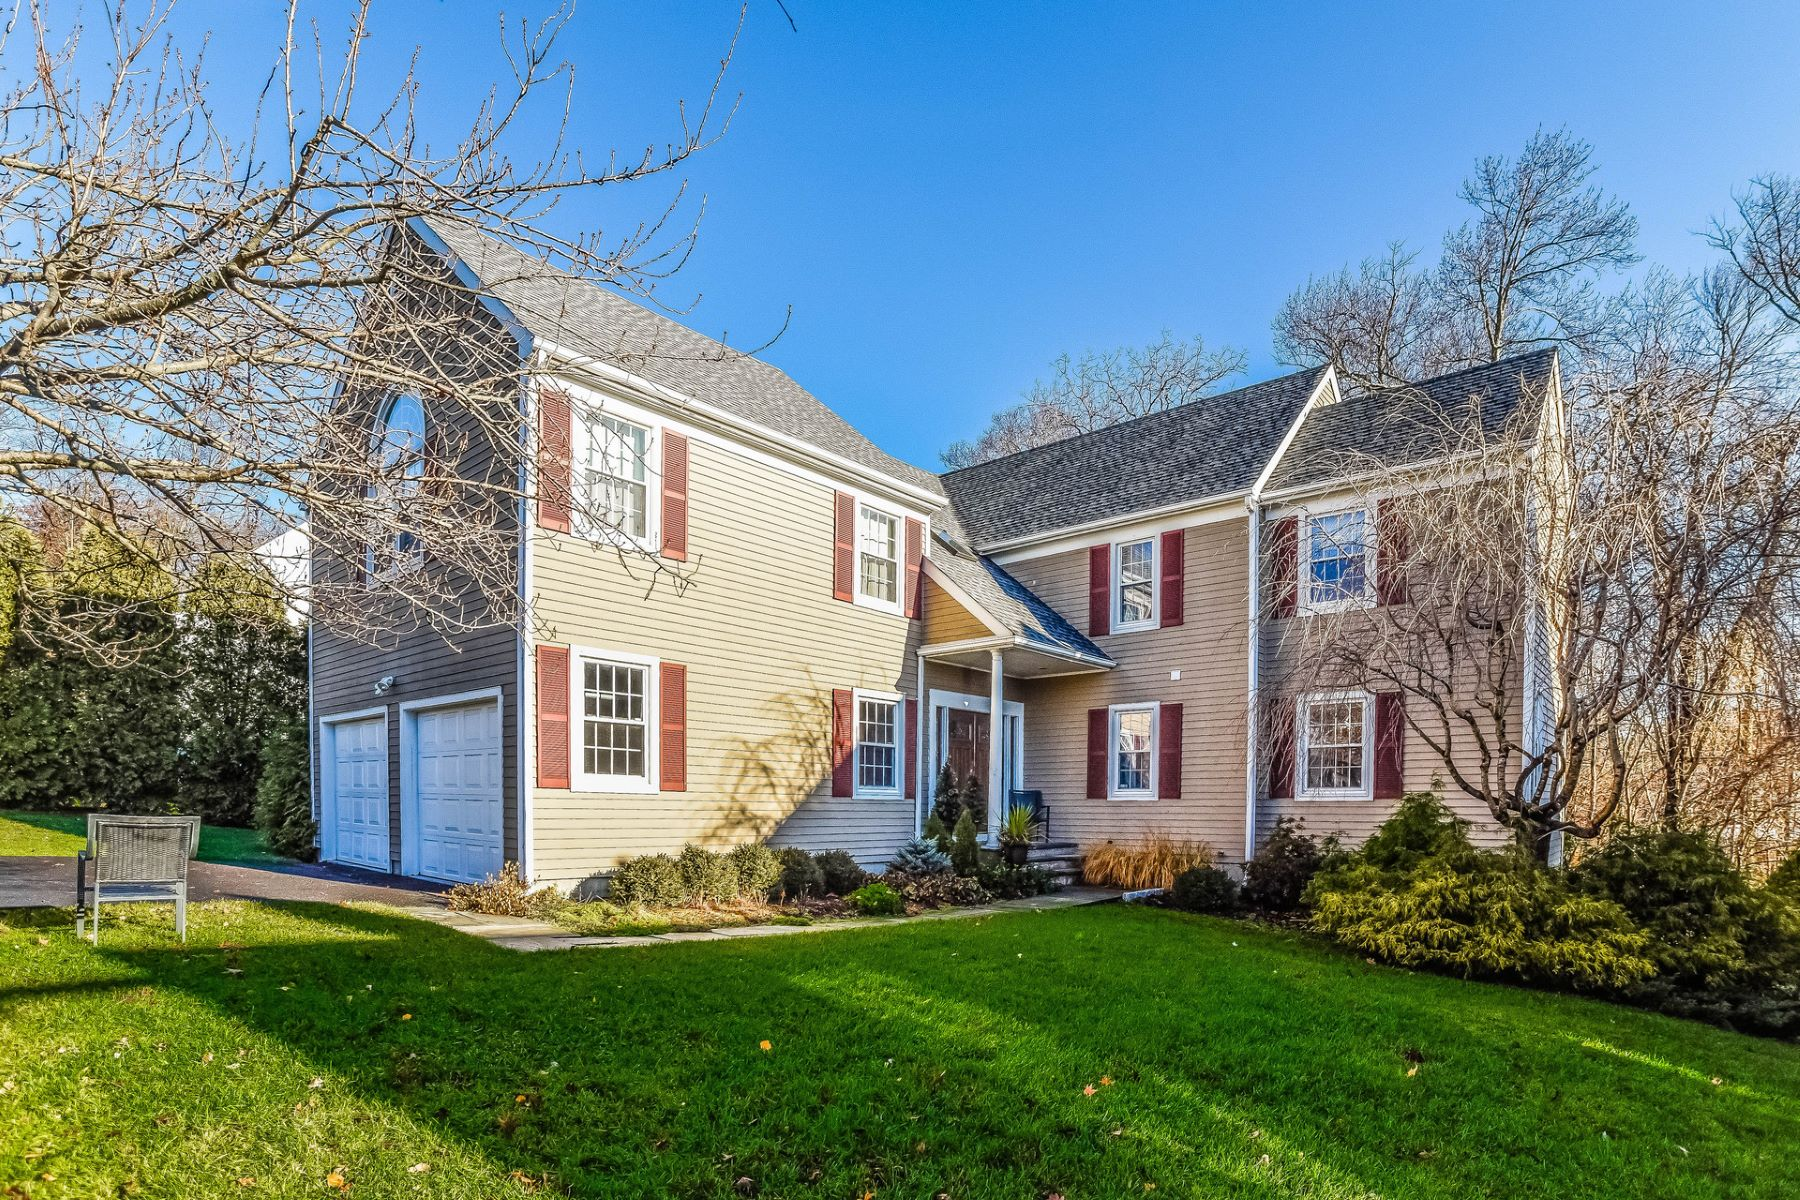 Single Family Home for Sale at Newfield Colonial 135 Edward Place Stamford, Connecticut, 06905 United States